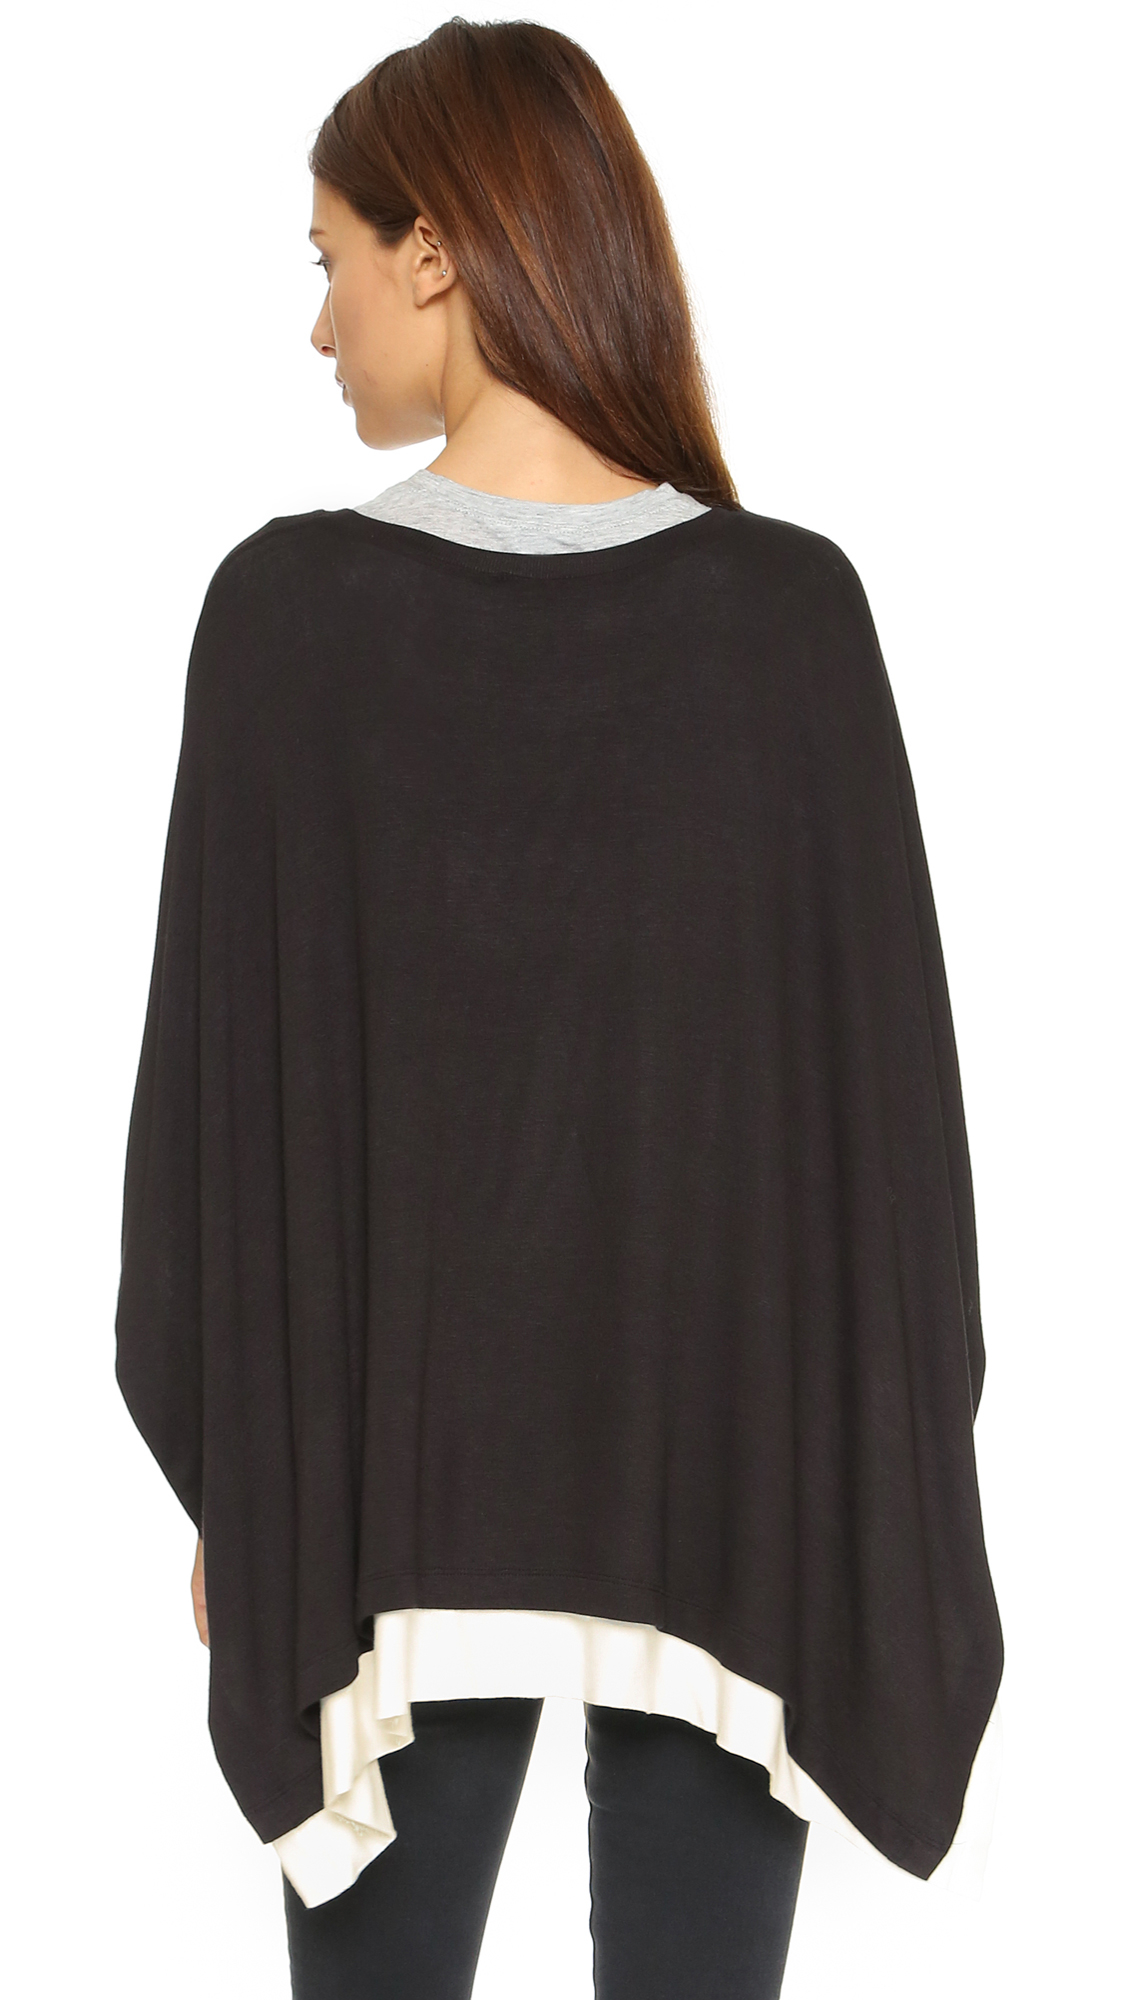 You searched for: black knit poncho! Etsy is the home to thousands of handmade, vintage, and one-of-a-kind products and gifts related to your search. No matter what you're looking for or where you are in the world, our global marketplace of sellers can help you find unique and affordable options. Let's get started!